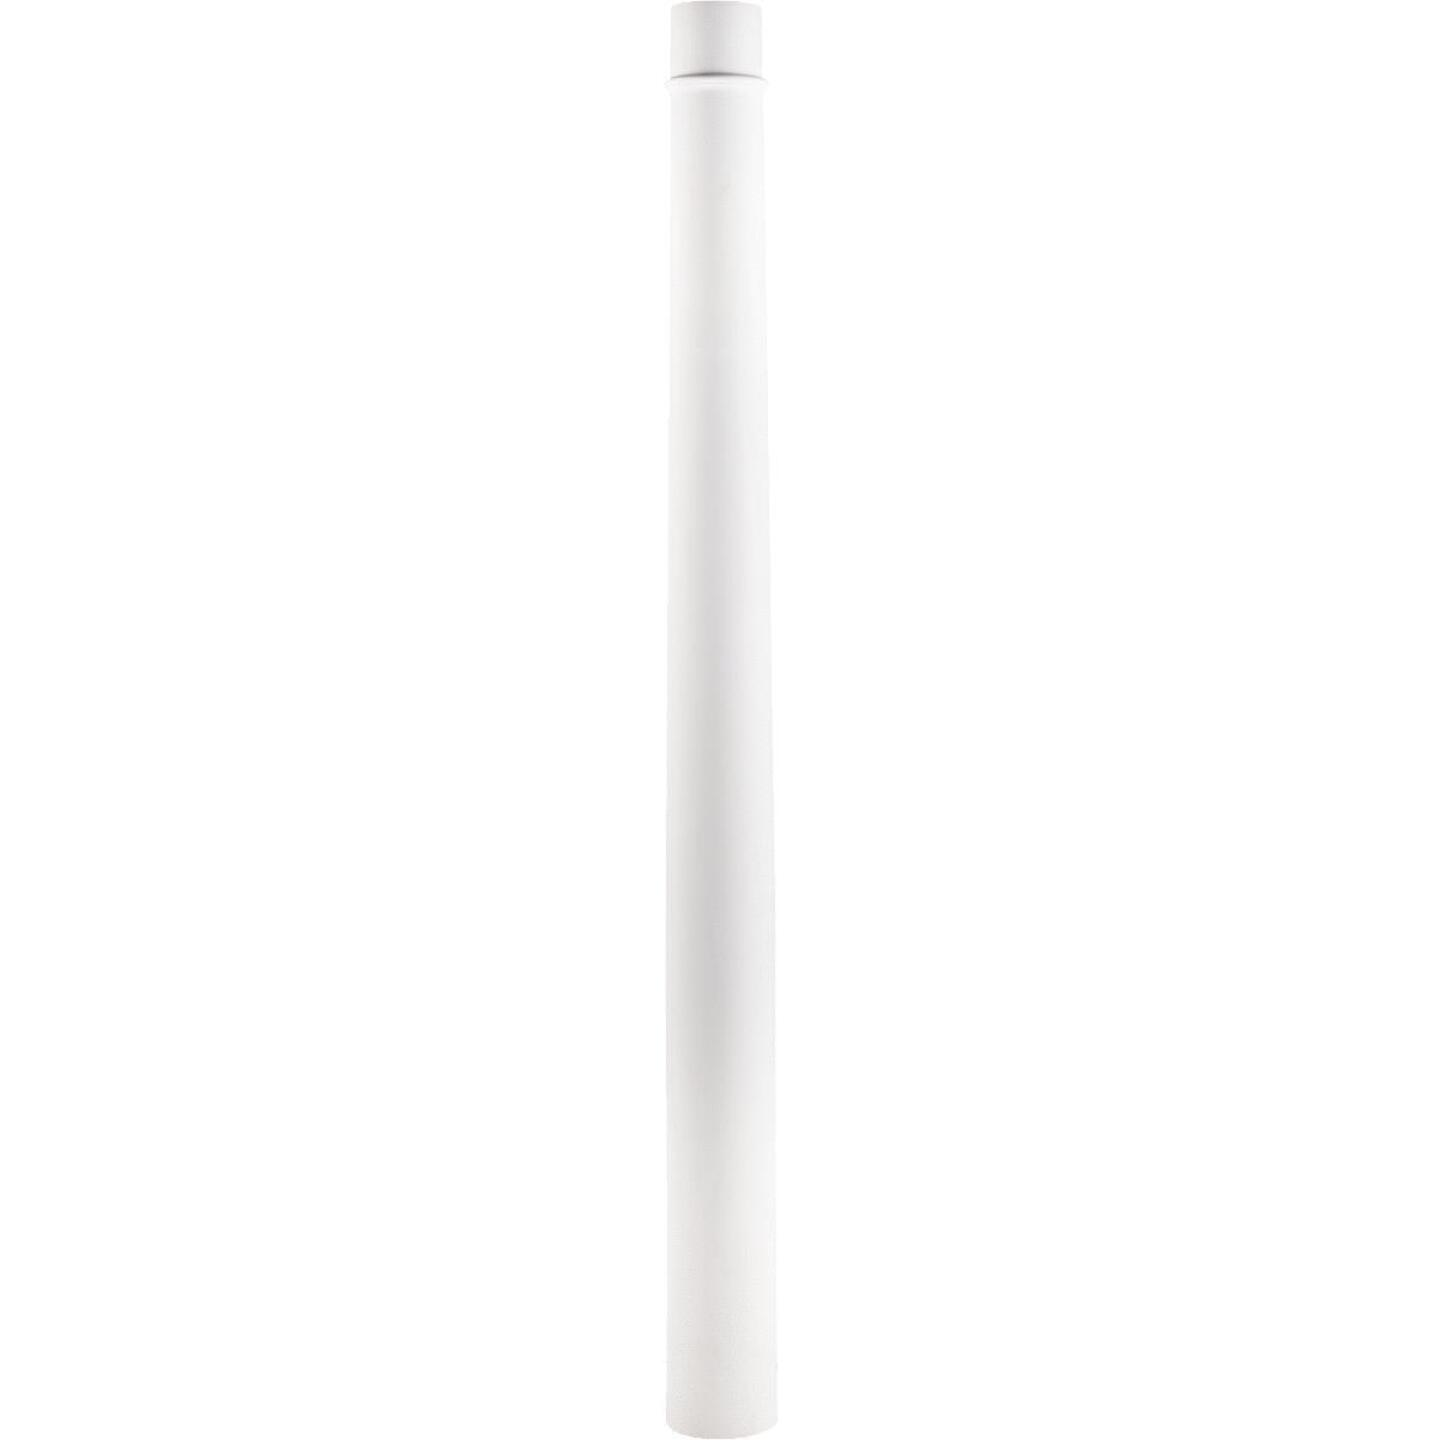 Crown Column 8 In. x 8 Ft. Unfinished Round Fiberglass Column Image 2